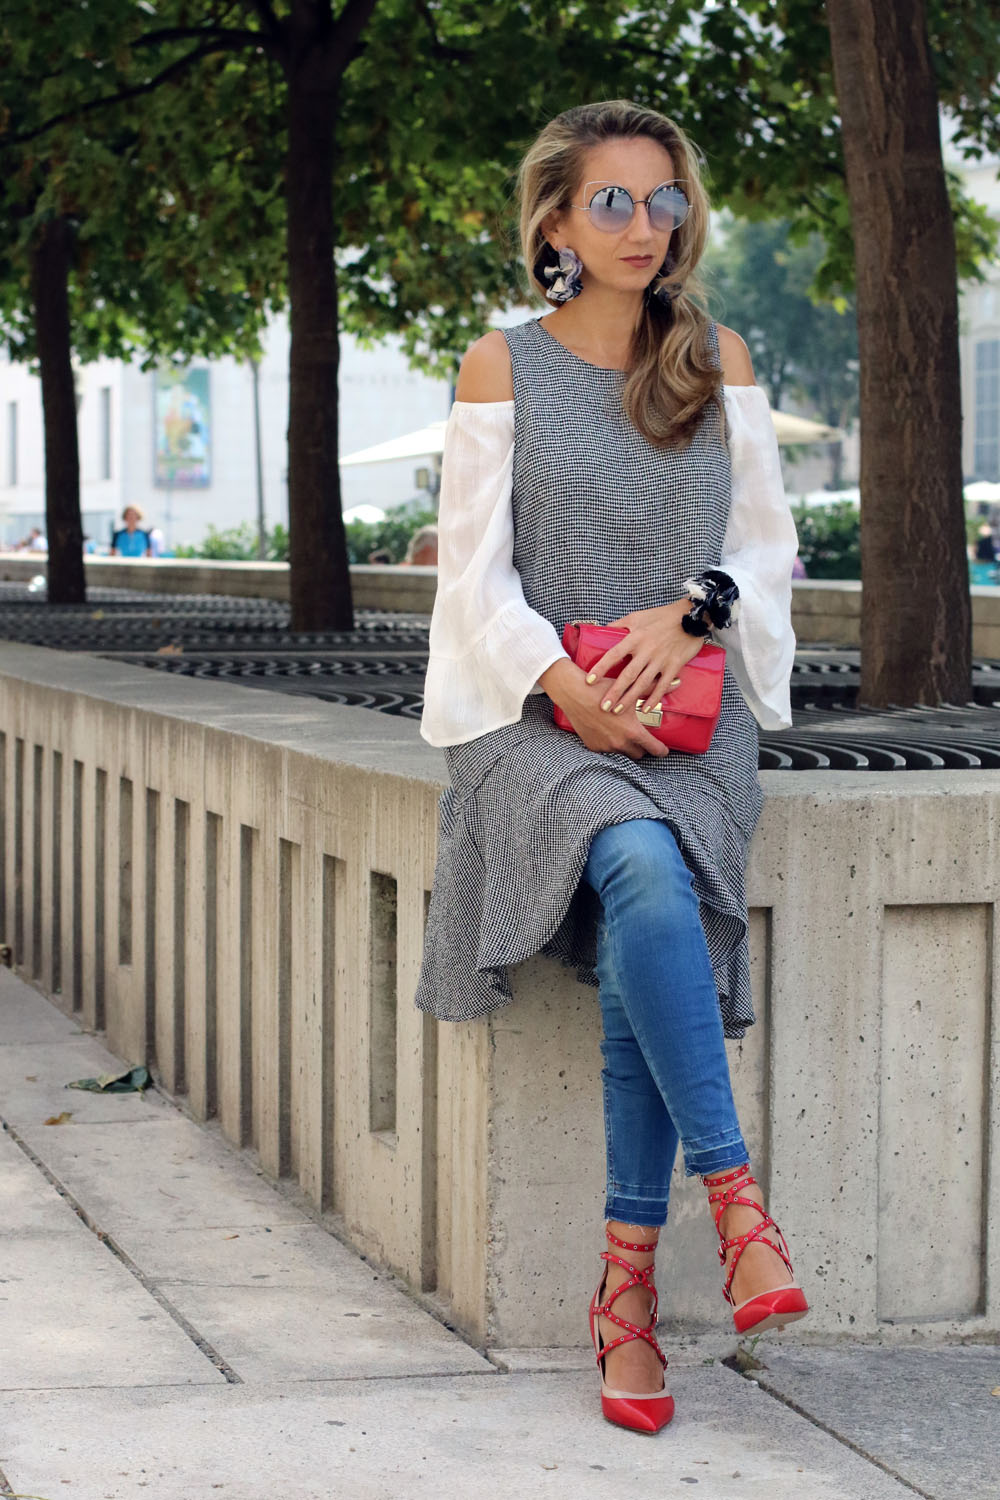 colourclub-fashion-blog-museums-quartier-vienna-valentino-pumps-furla-bag-off-shoulder-top-outfit-kleid-ueber-hose-bluejeans-skinny-jeans-lagenlook-marc-jacobs-sonnenbrille2